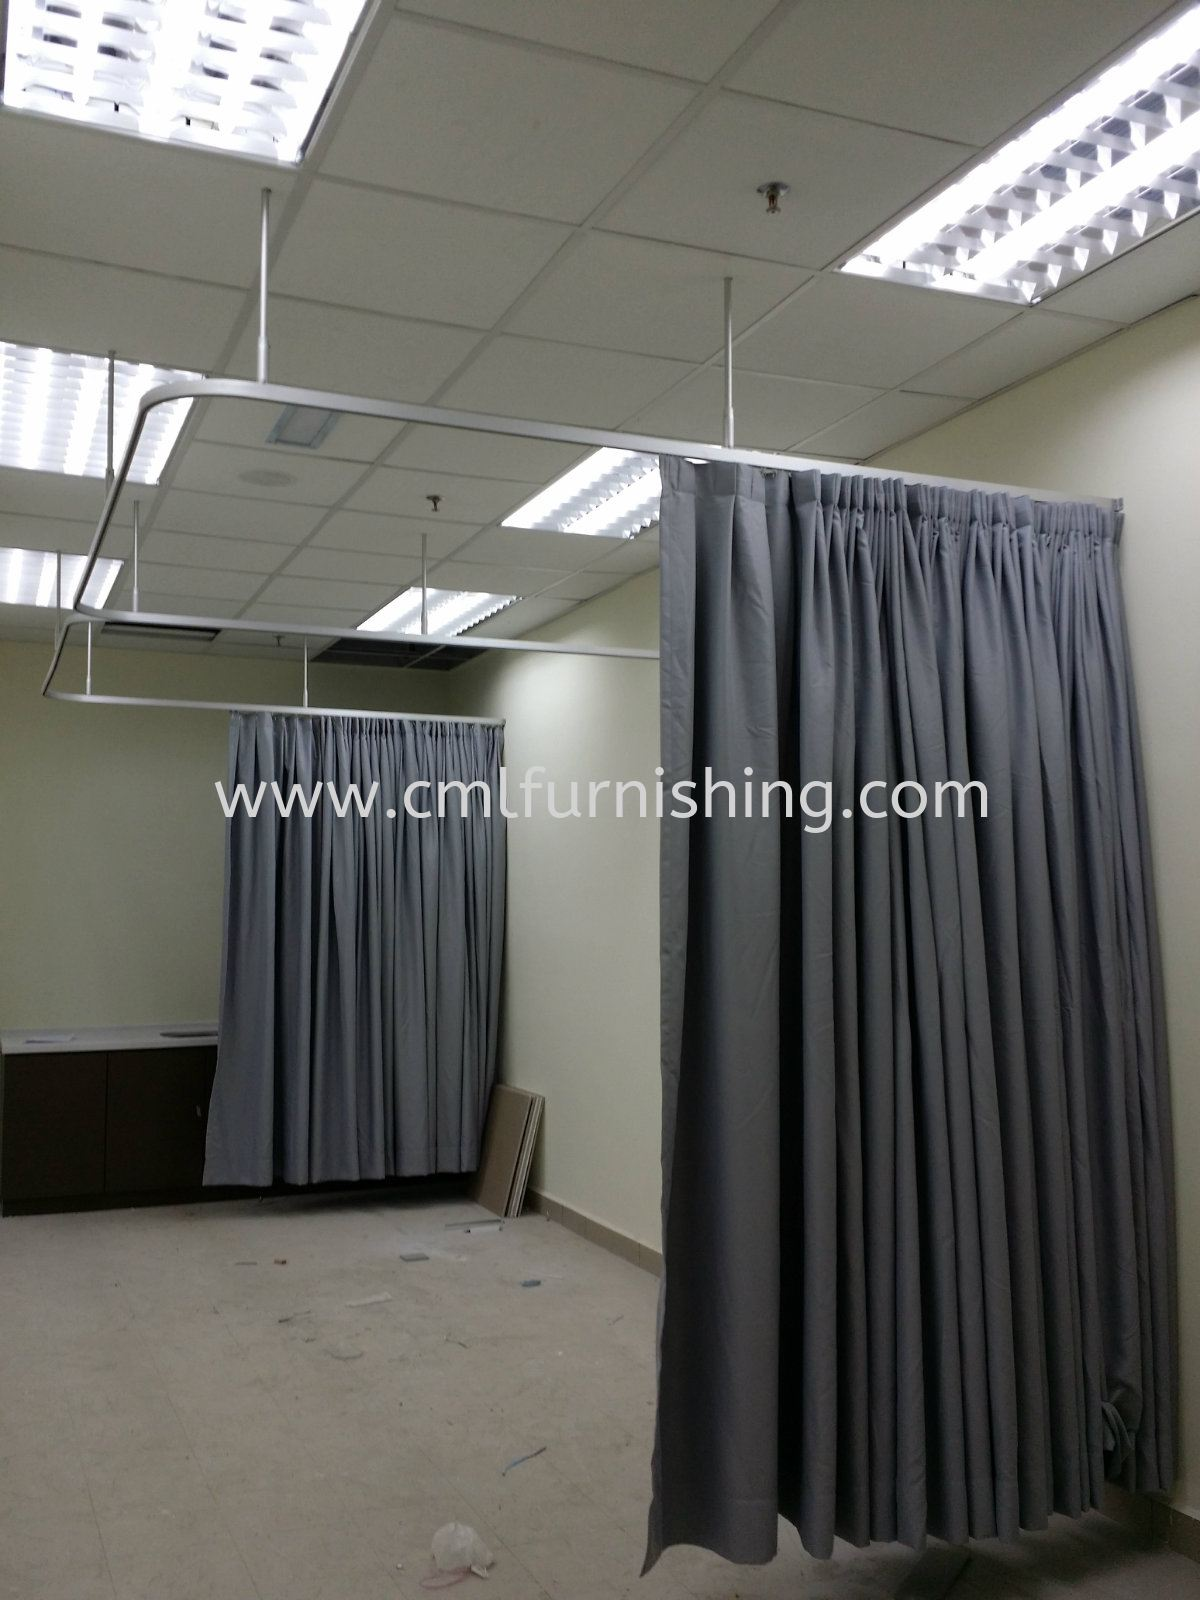 Cubicle Ceiling Mounted Curtain